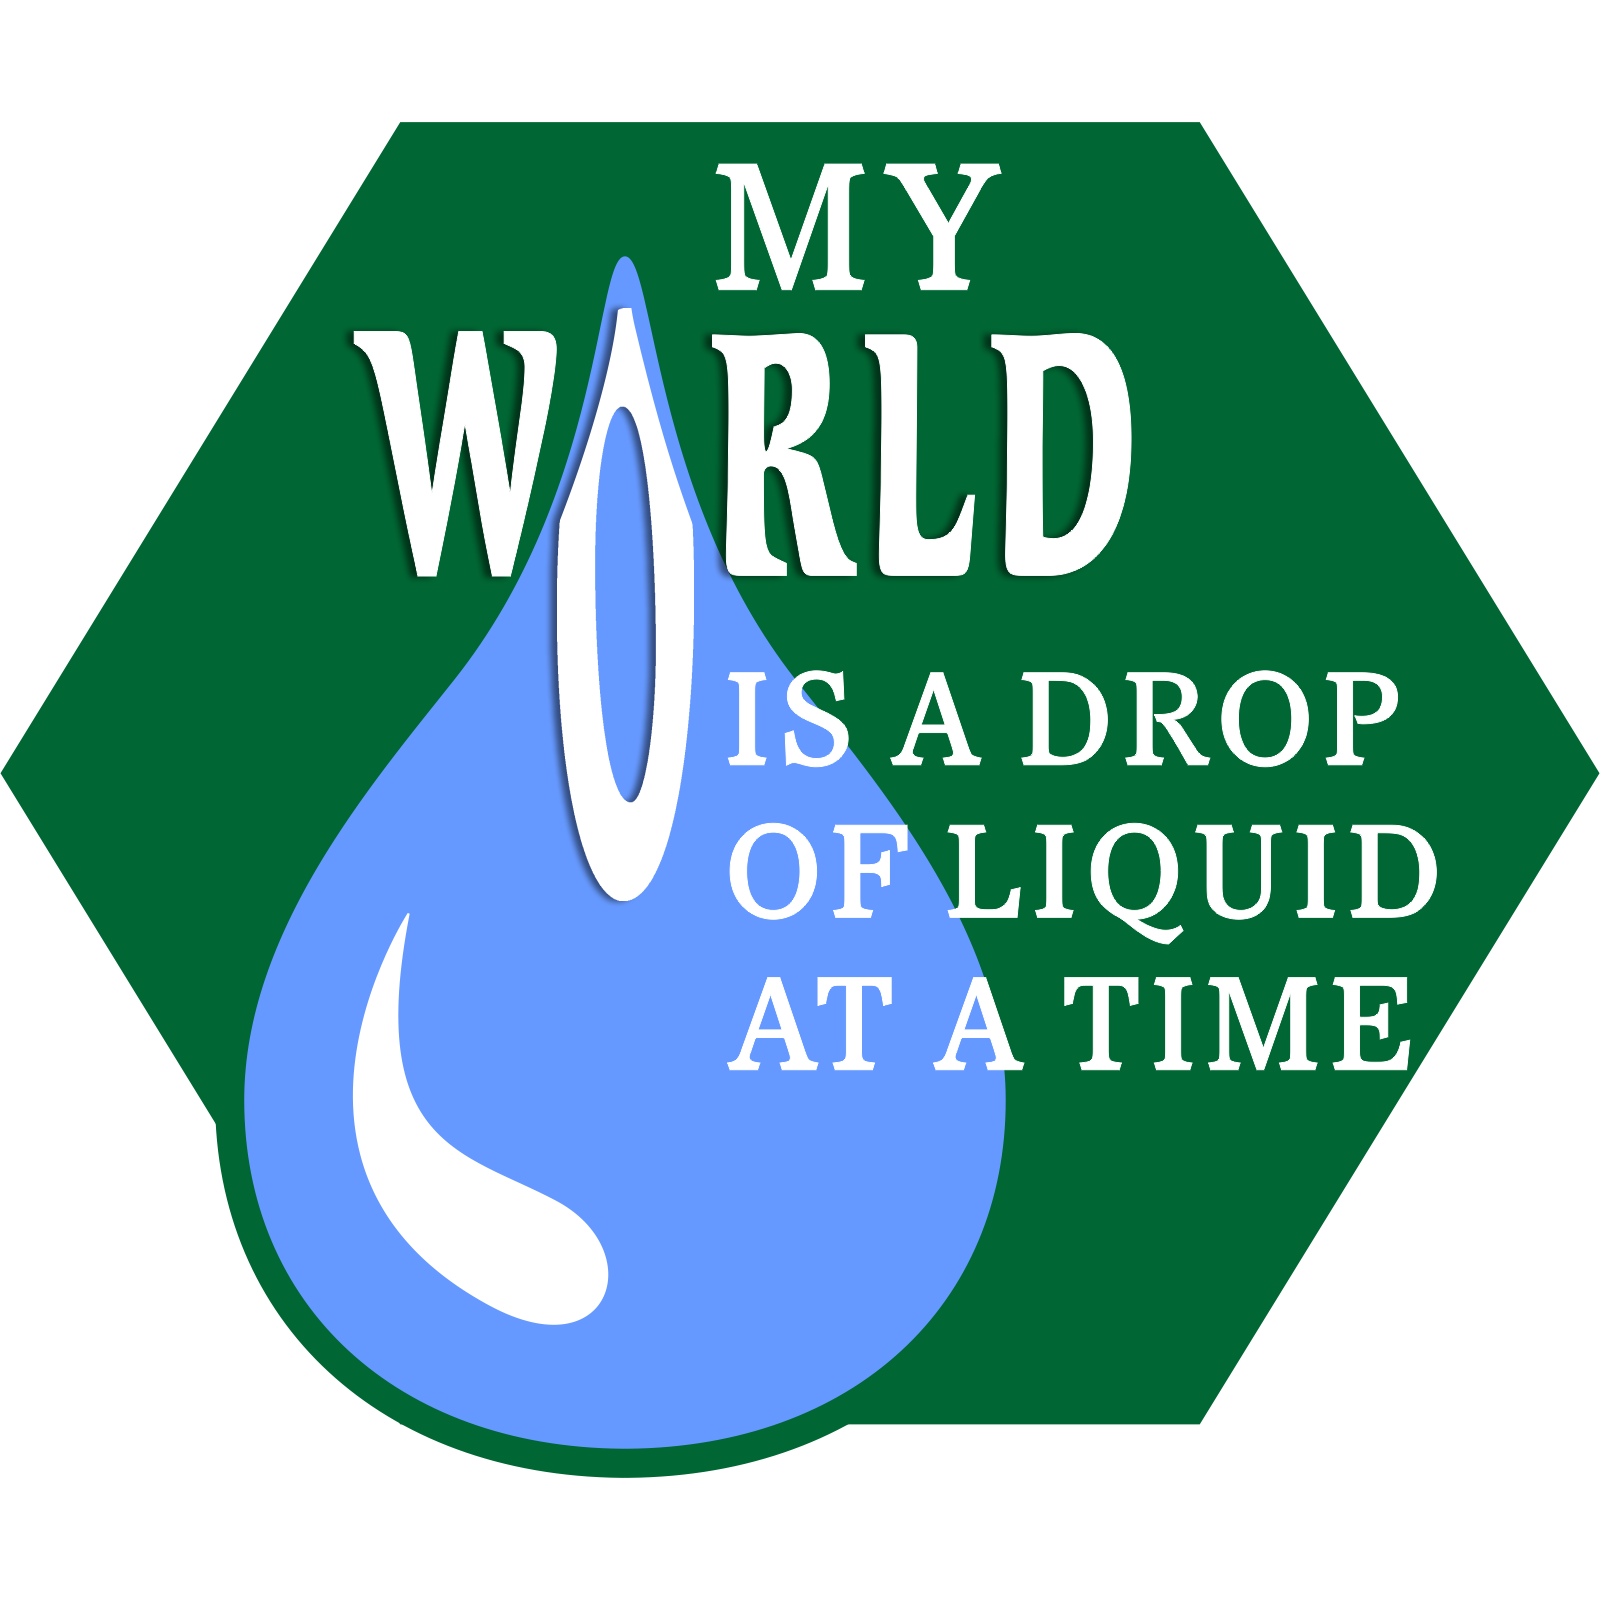 My world is a drop of liquid at a time